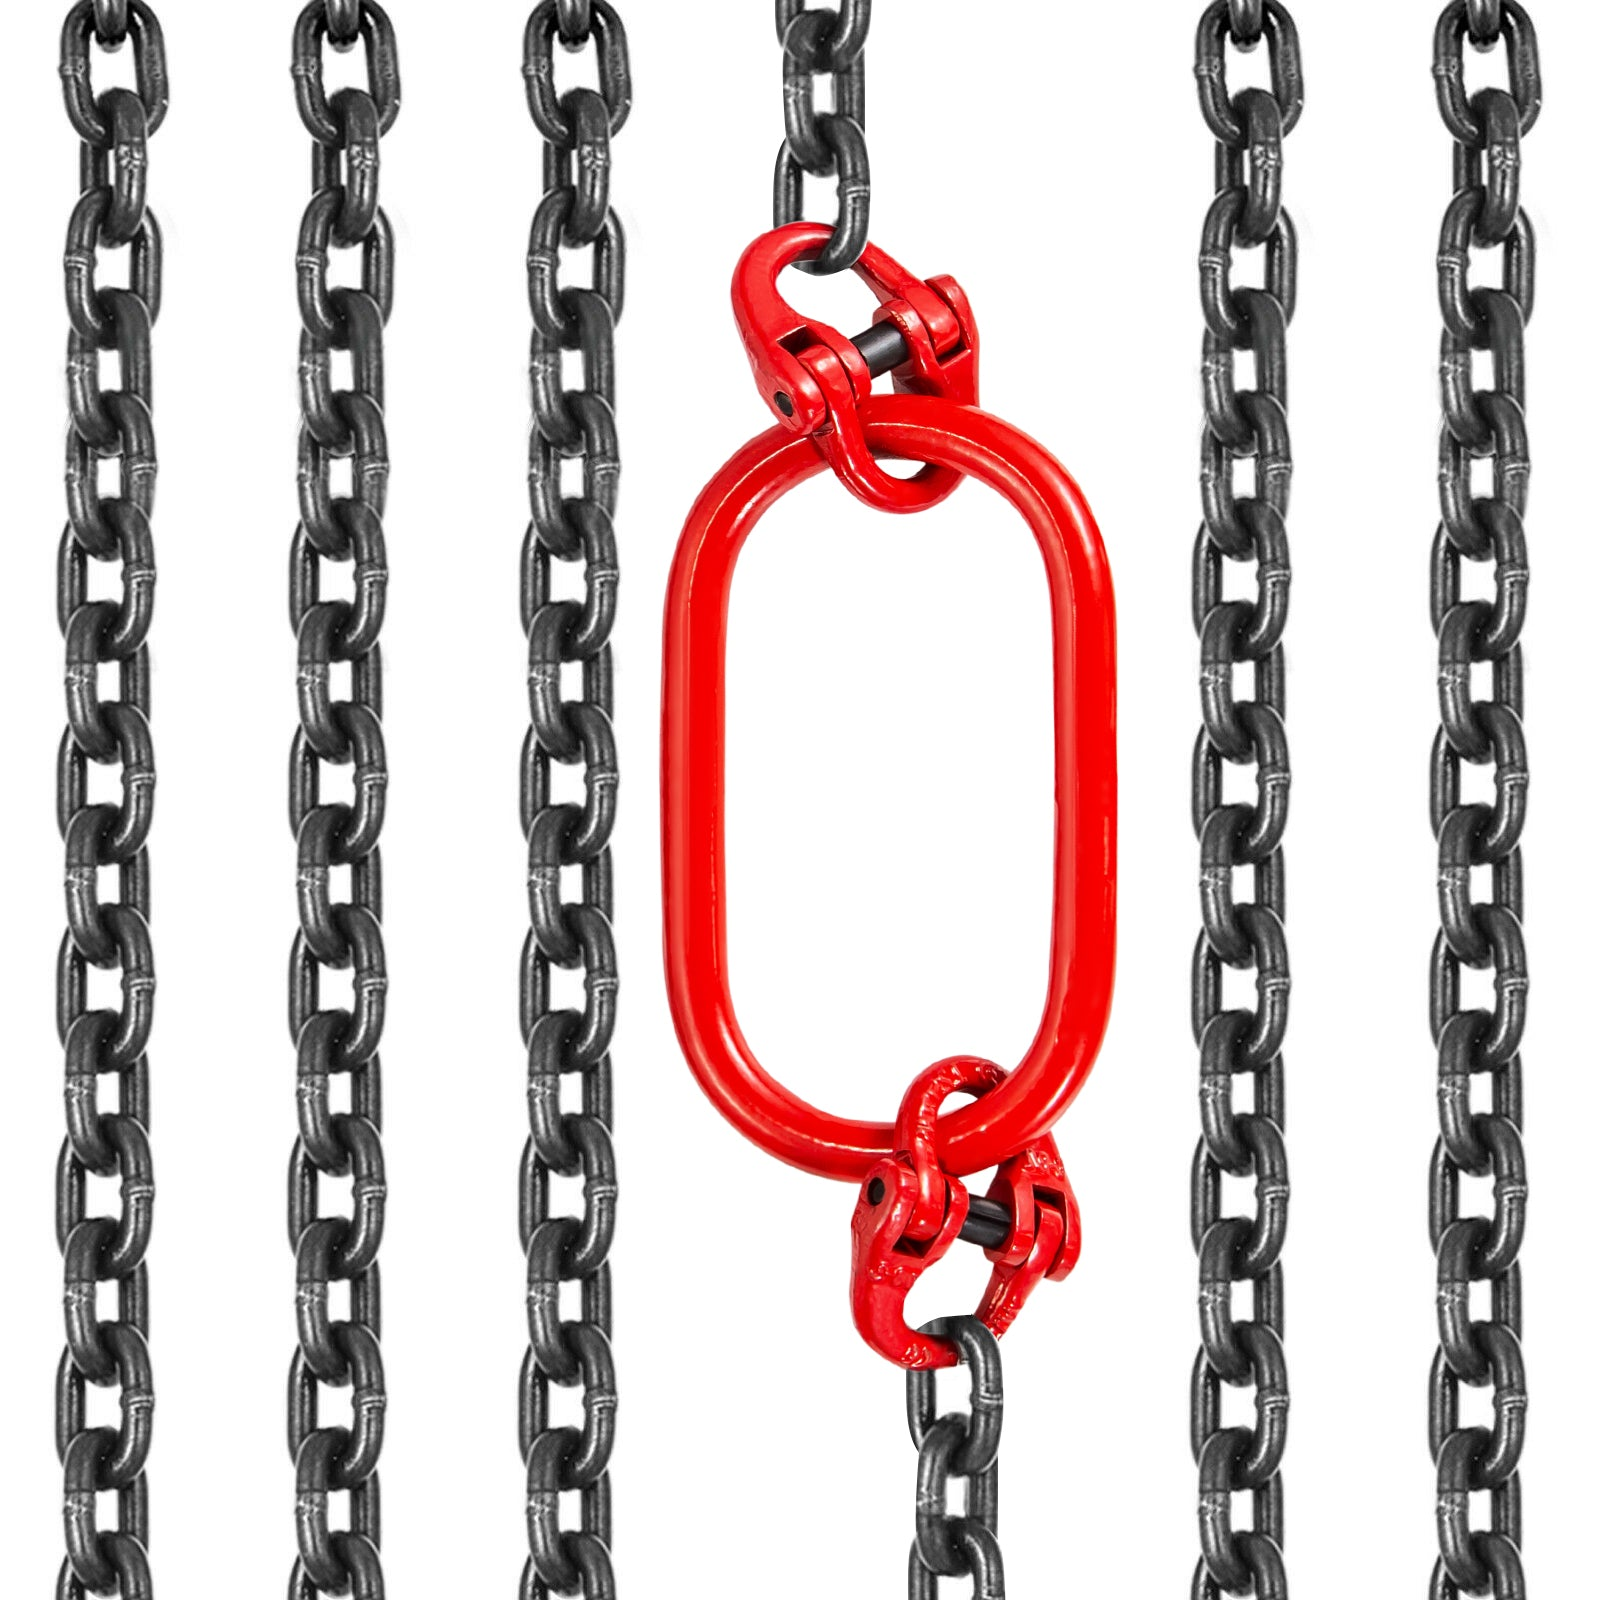 2m Lifting Chain Sling 2 Tonne With 2 Legs Steel Factories Wearproof 8mm